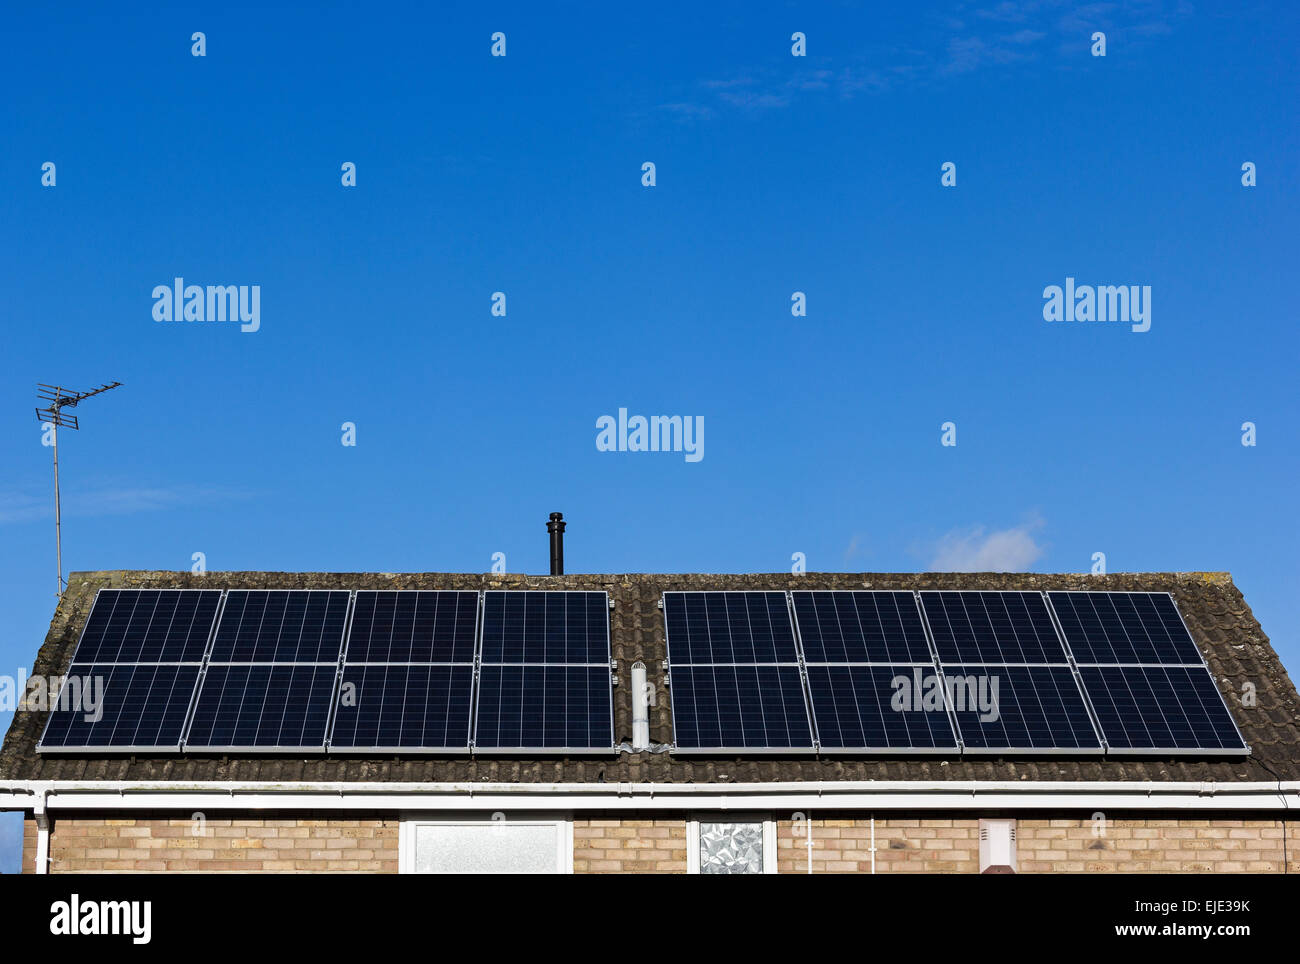 Roof of a domestic house with solar panels. - Stock Image